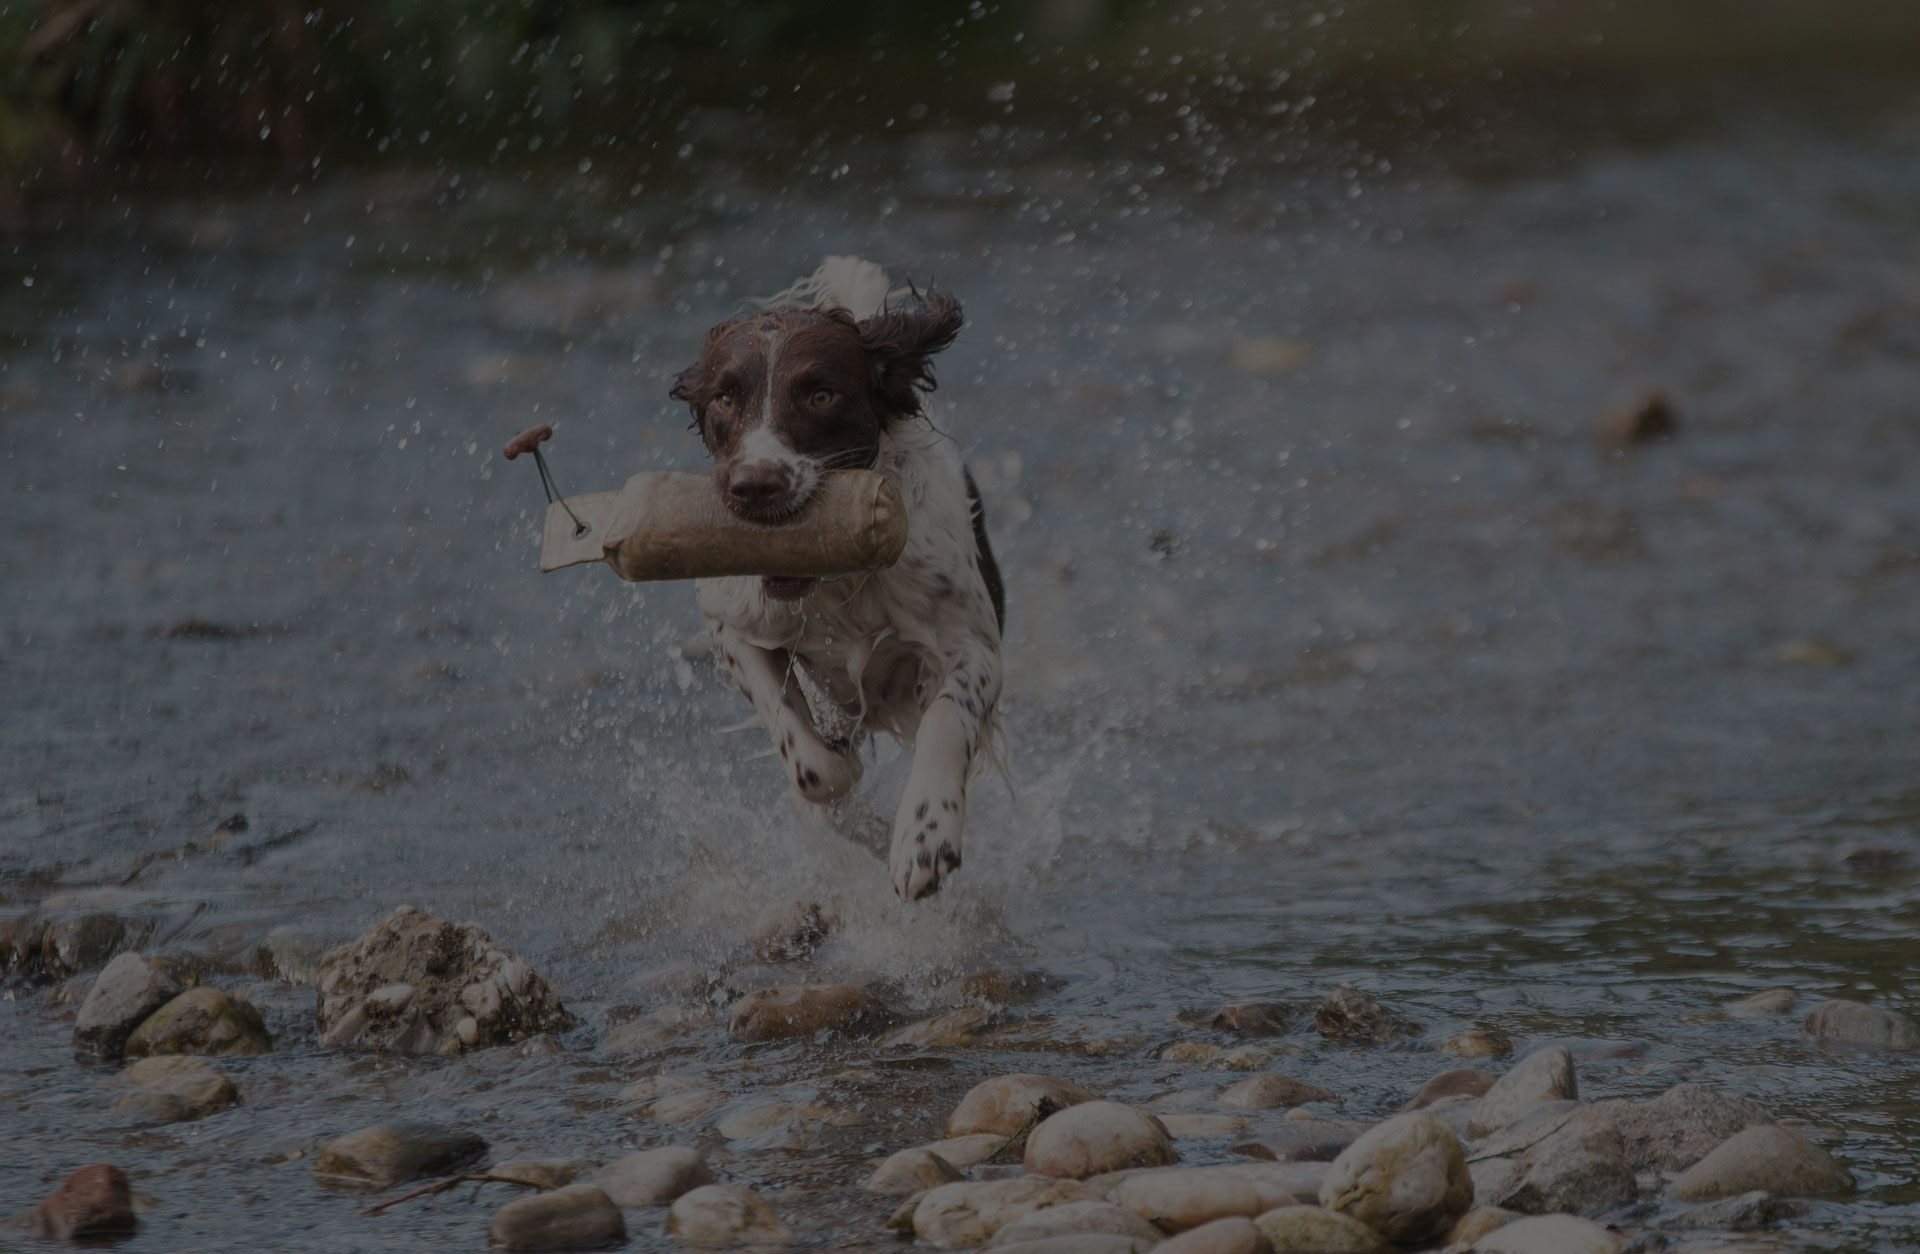 A dog running in the river with holding a toy bag in his mouth